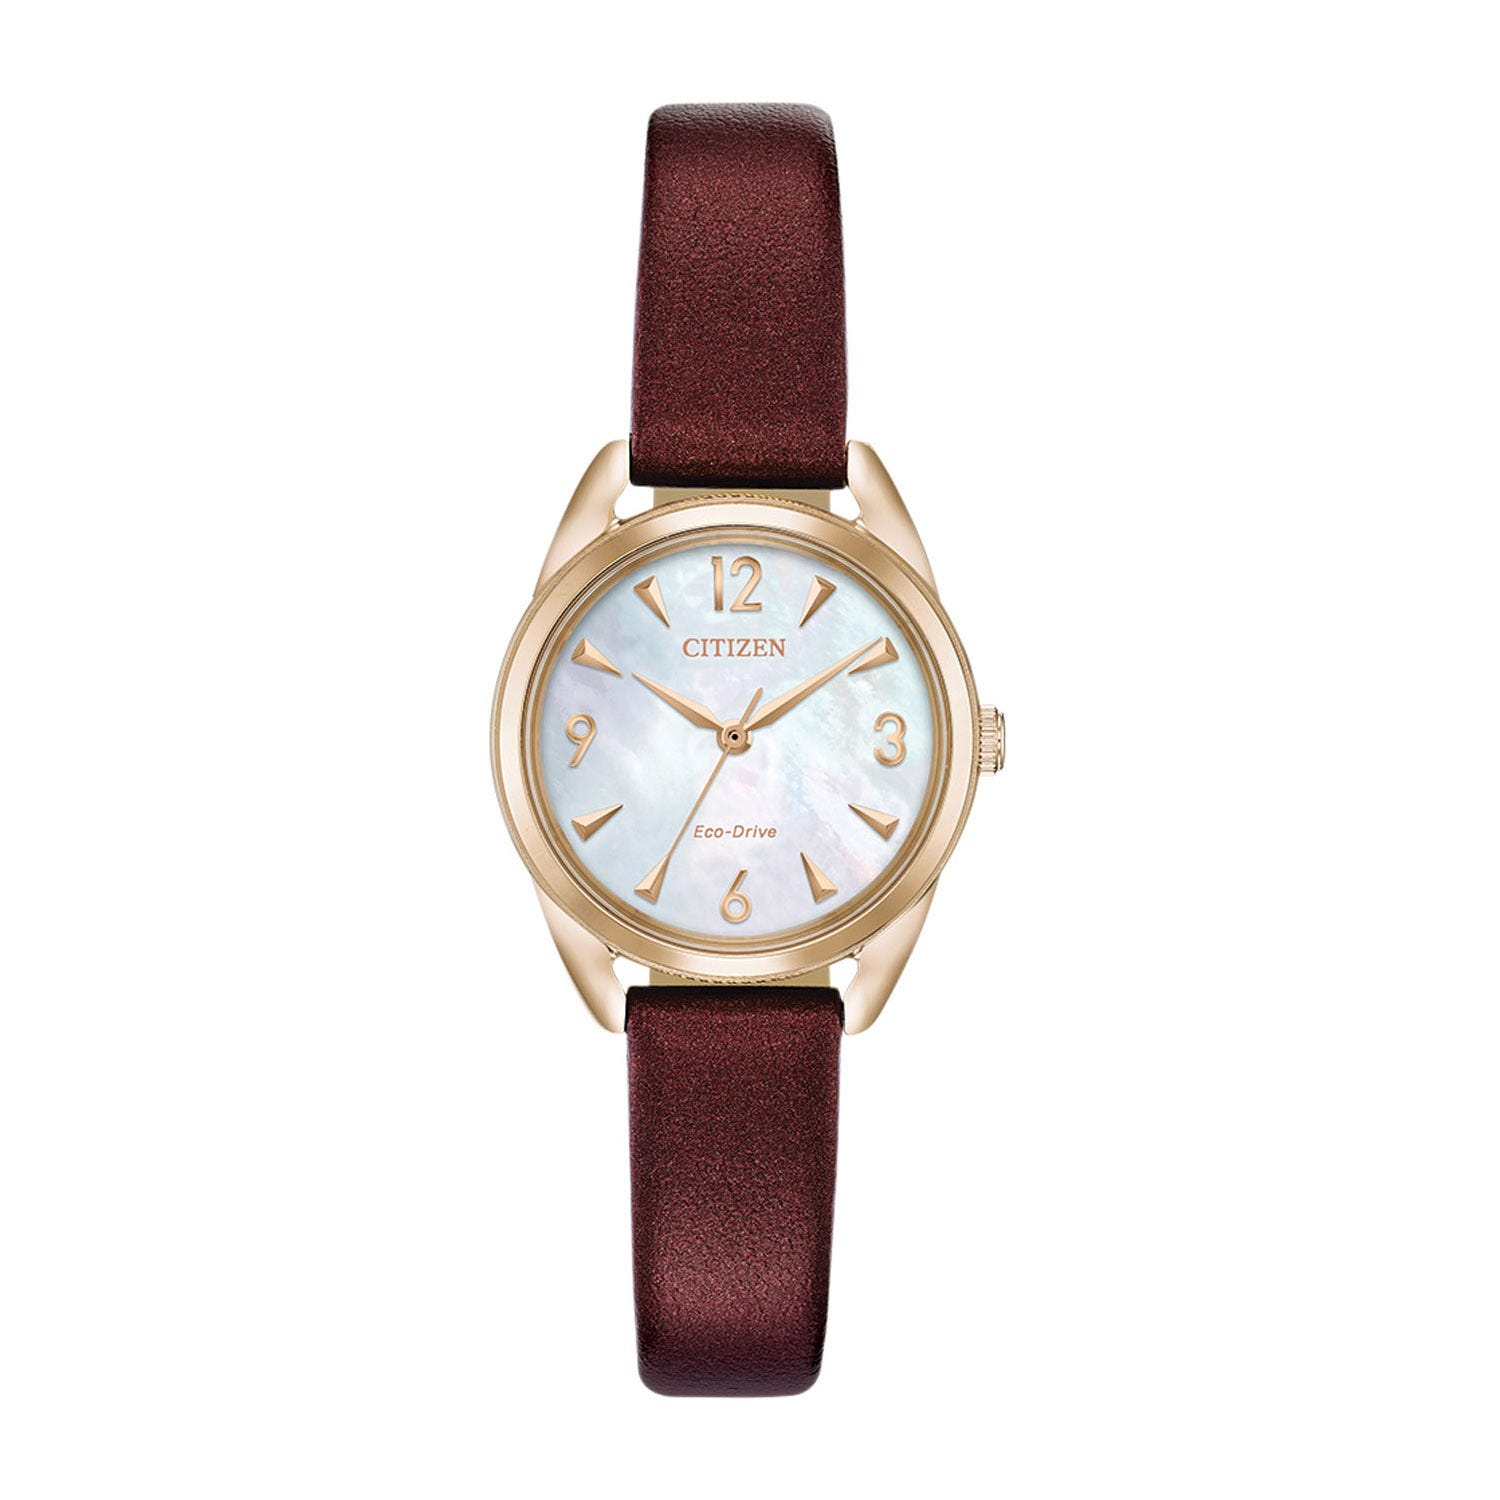 Citizen Mini Drive Burgundy & Mother-of-Pearl Vegan Leather Ladies' Watch